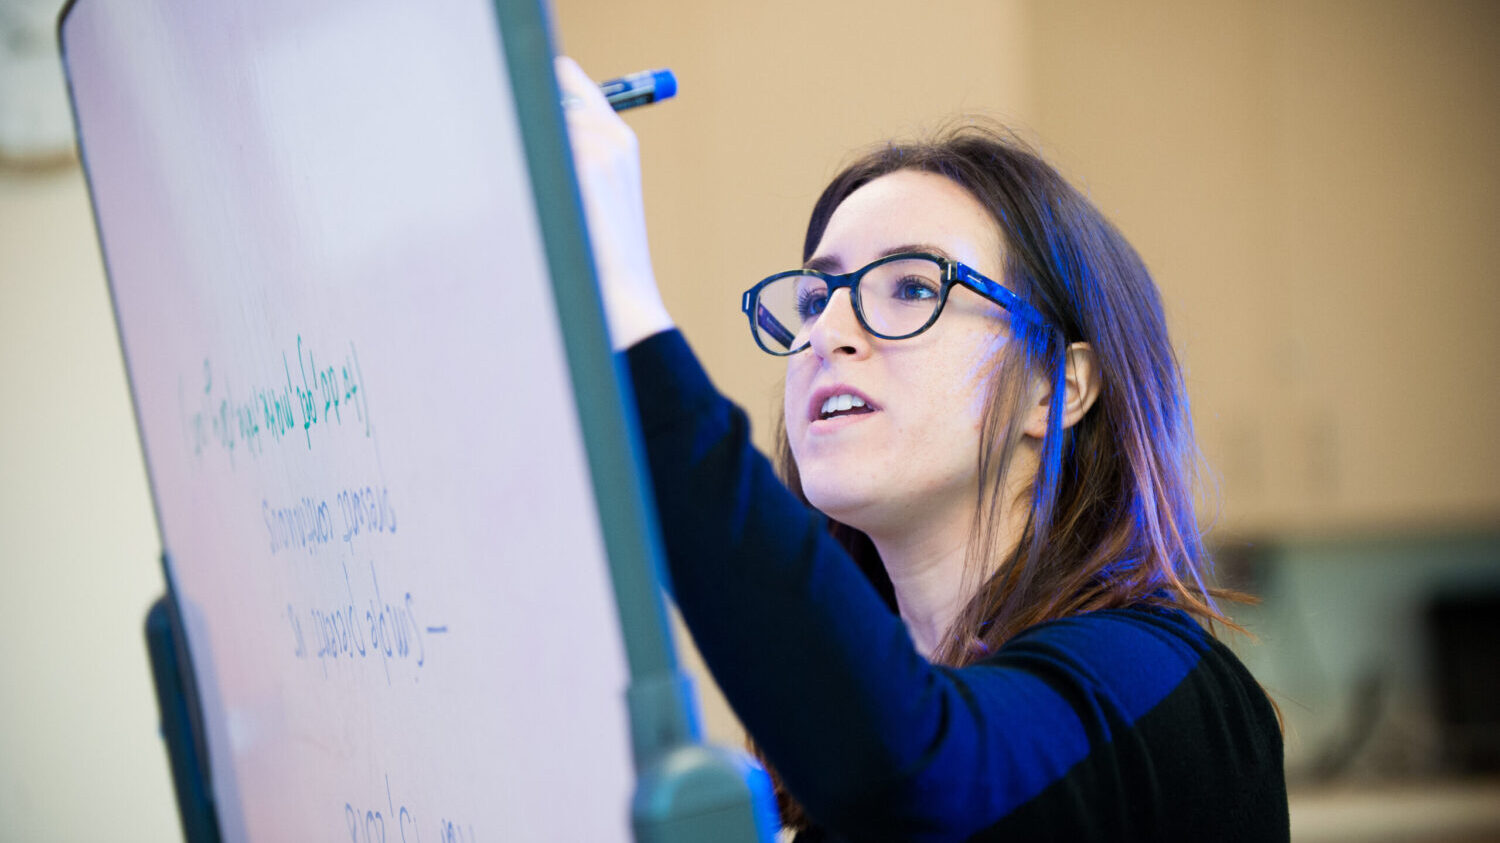 A student writes on a whiteboard